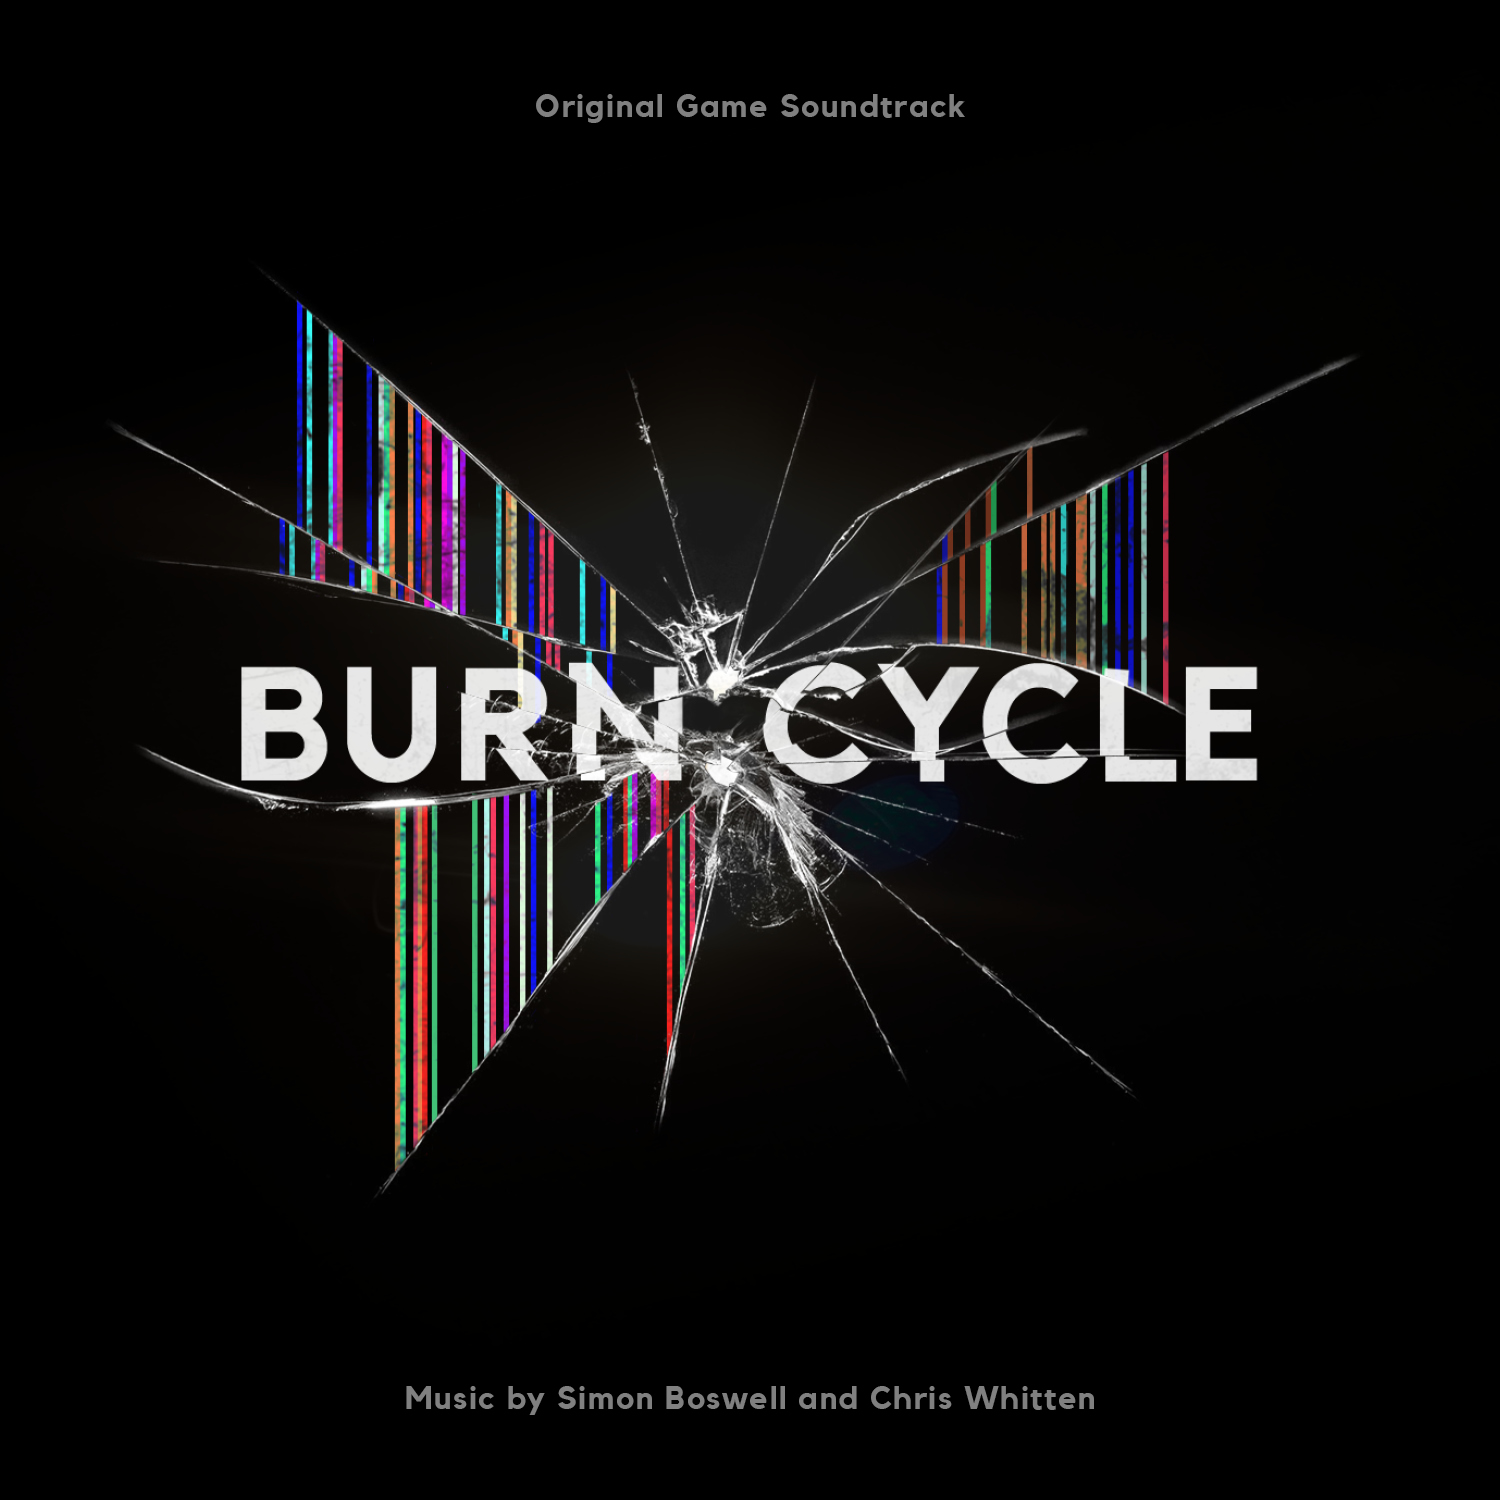 Newly remastered #soundtrack to Philips Cdi #videogame Burn:Cycle, cyberpunk game incorporating full motion video music composed by Chris Whitten #synth #electronica and Simon Boswell orchestral filmscore